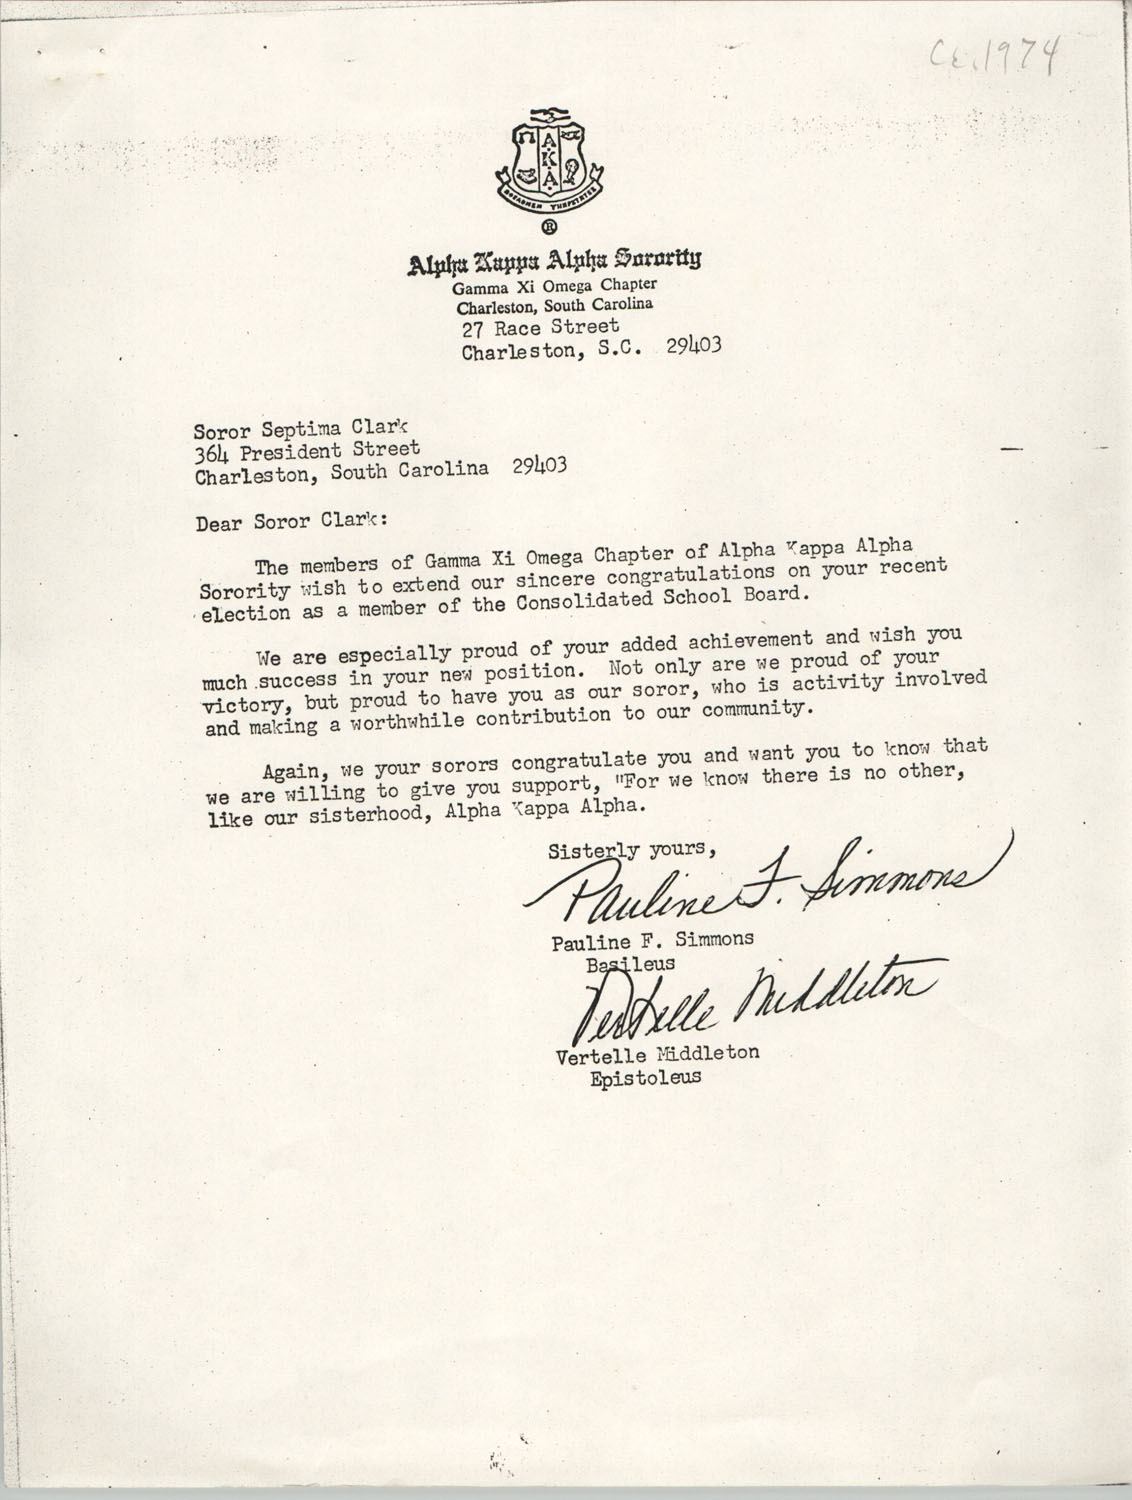 Letter from Pauline F. Simmons and Vertelle Middleton to Septima Clark, 1974